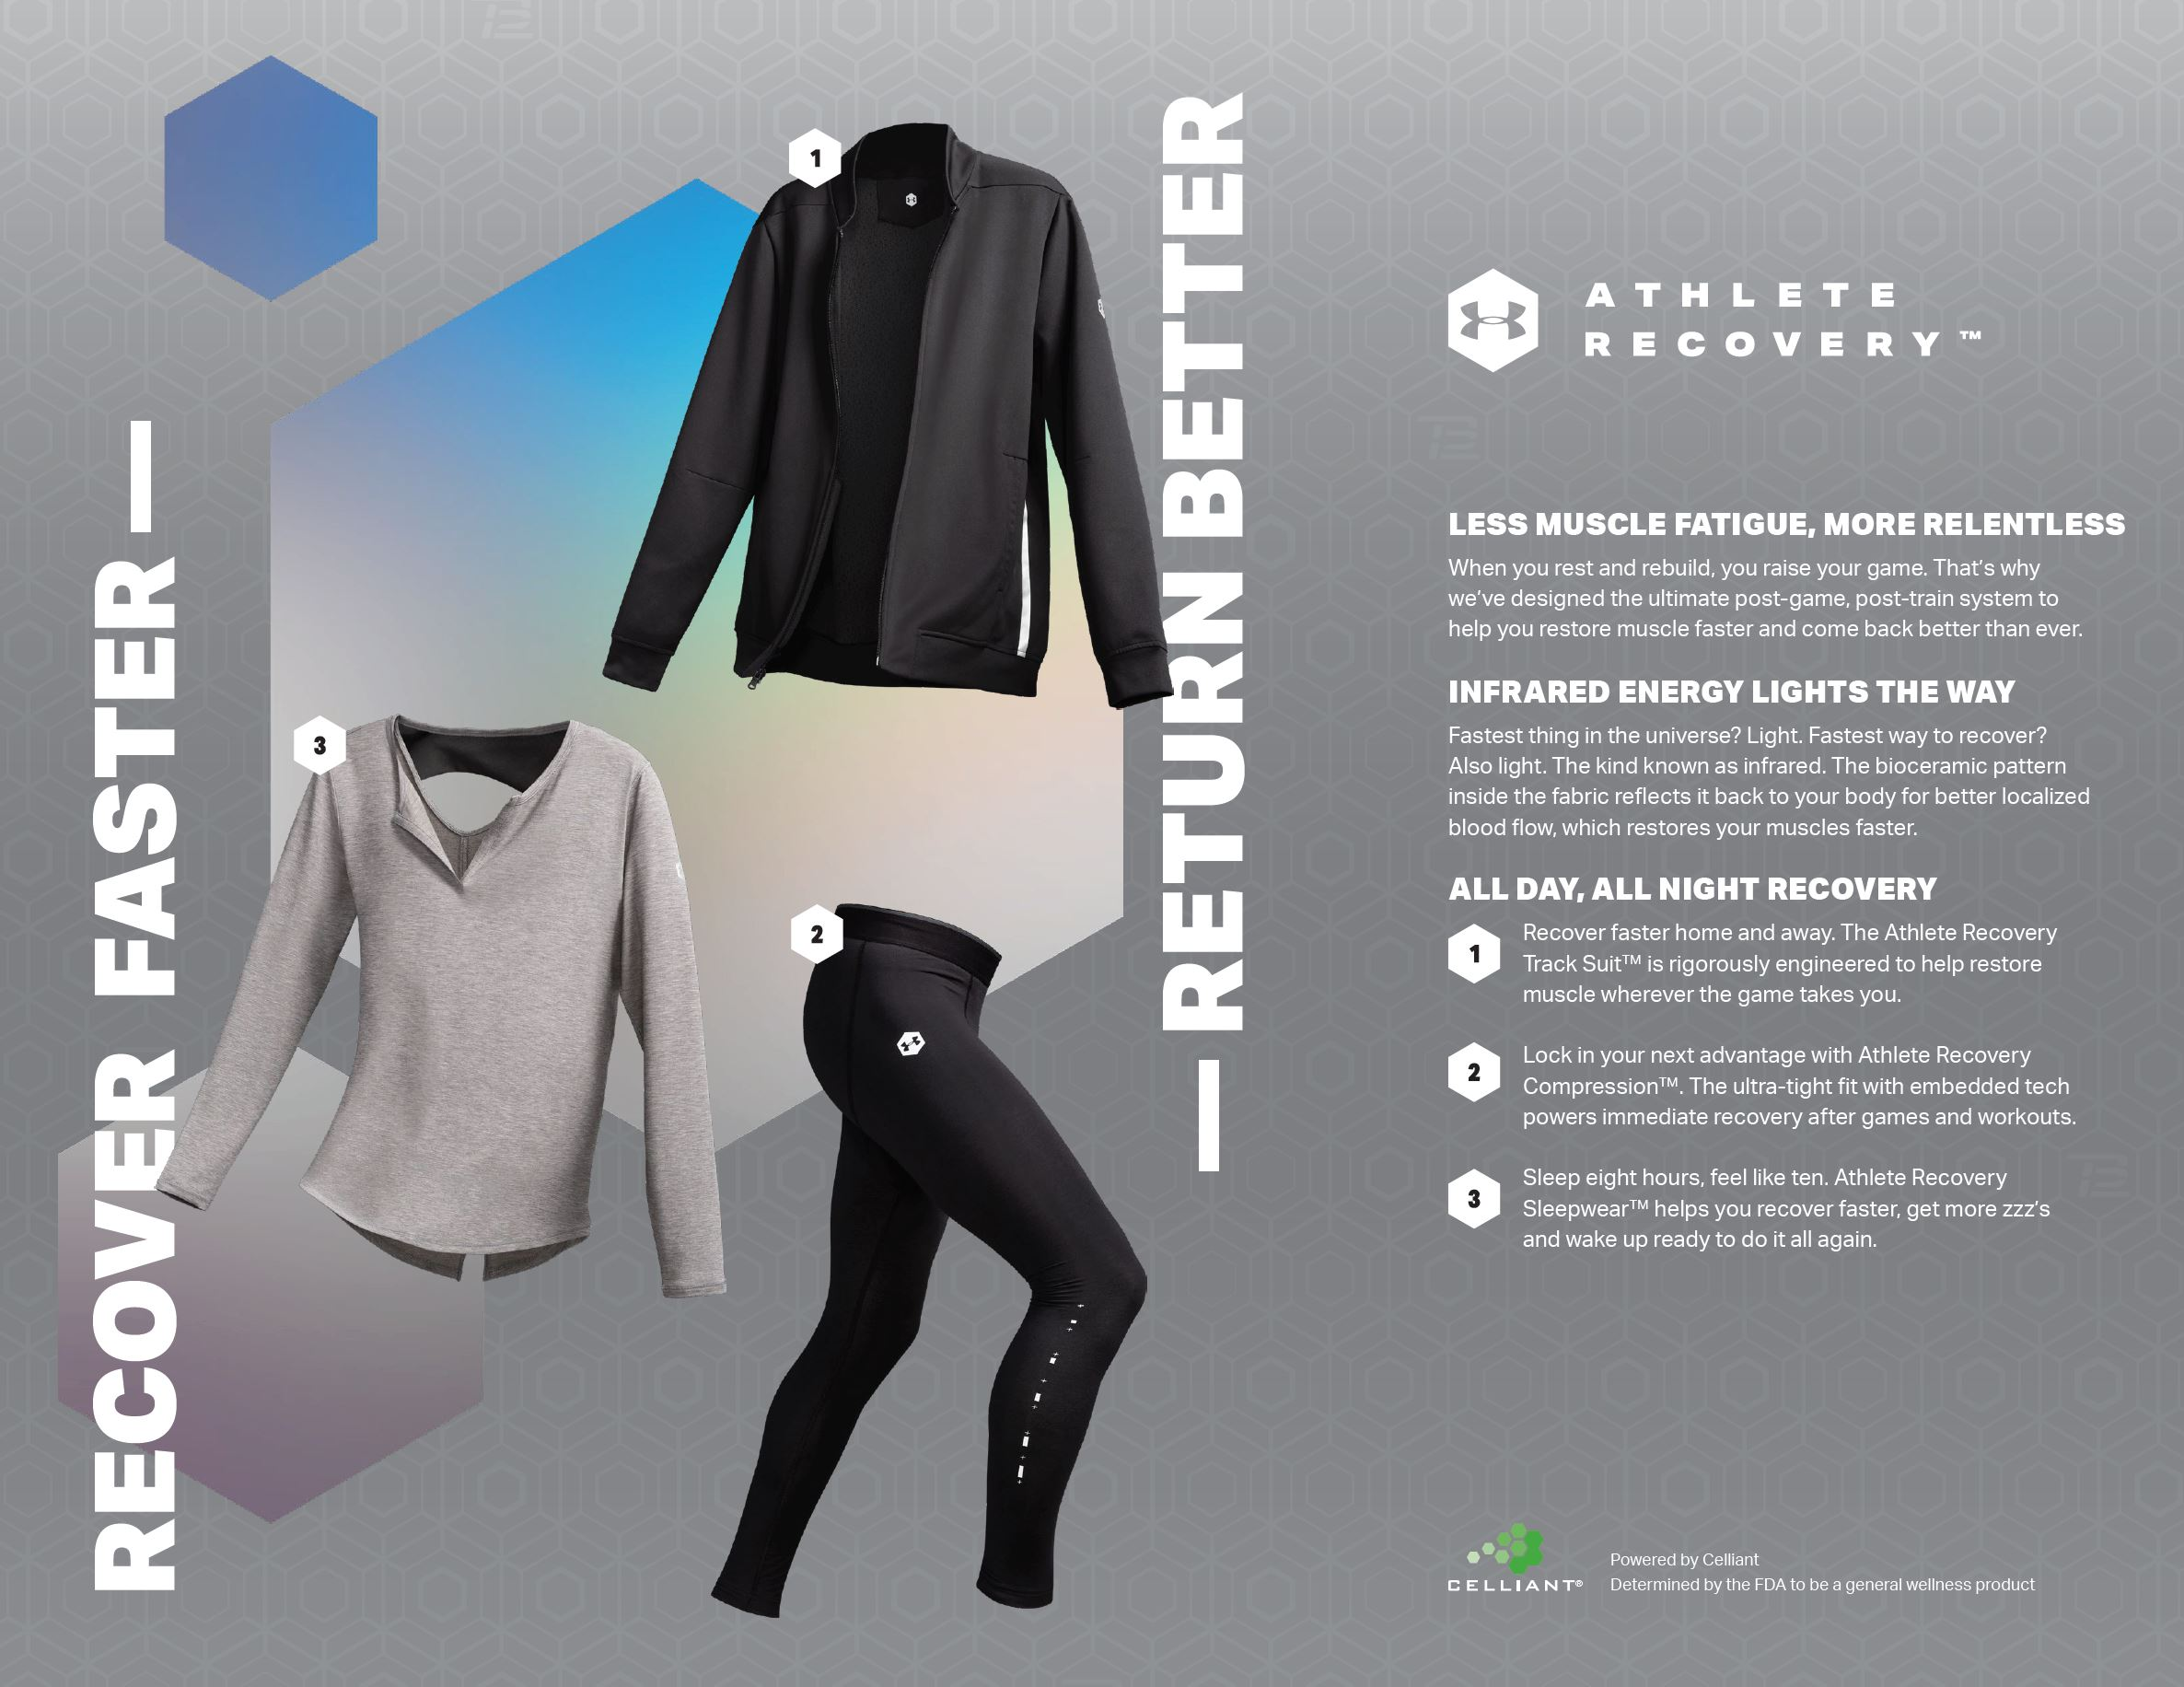 e9ab7416f3 Under Armour and Celliant Get Serious About Recovery - WearTesters